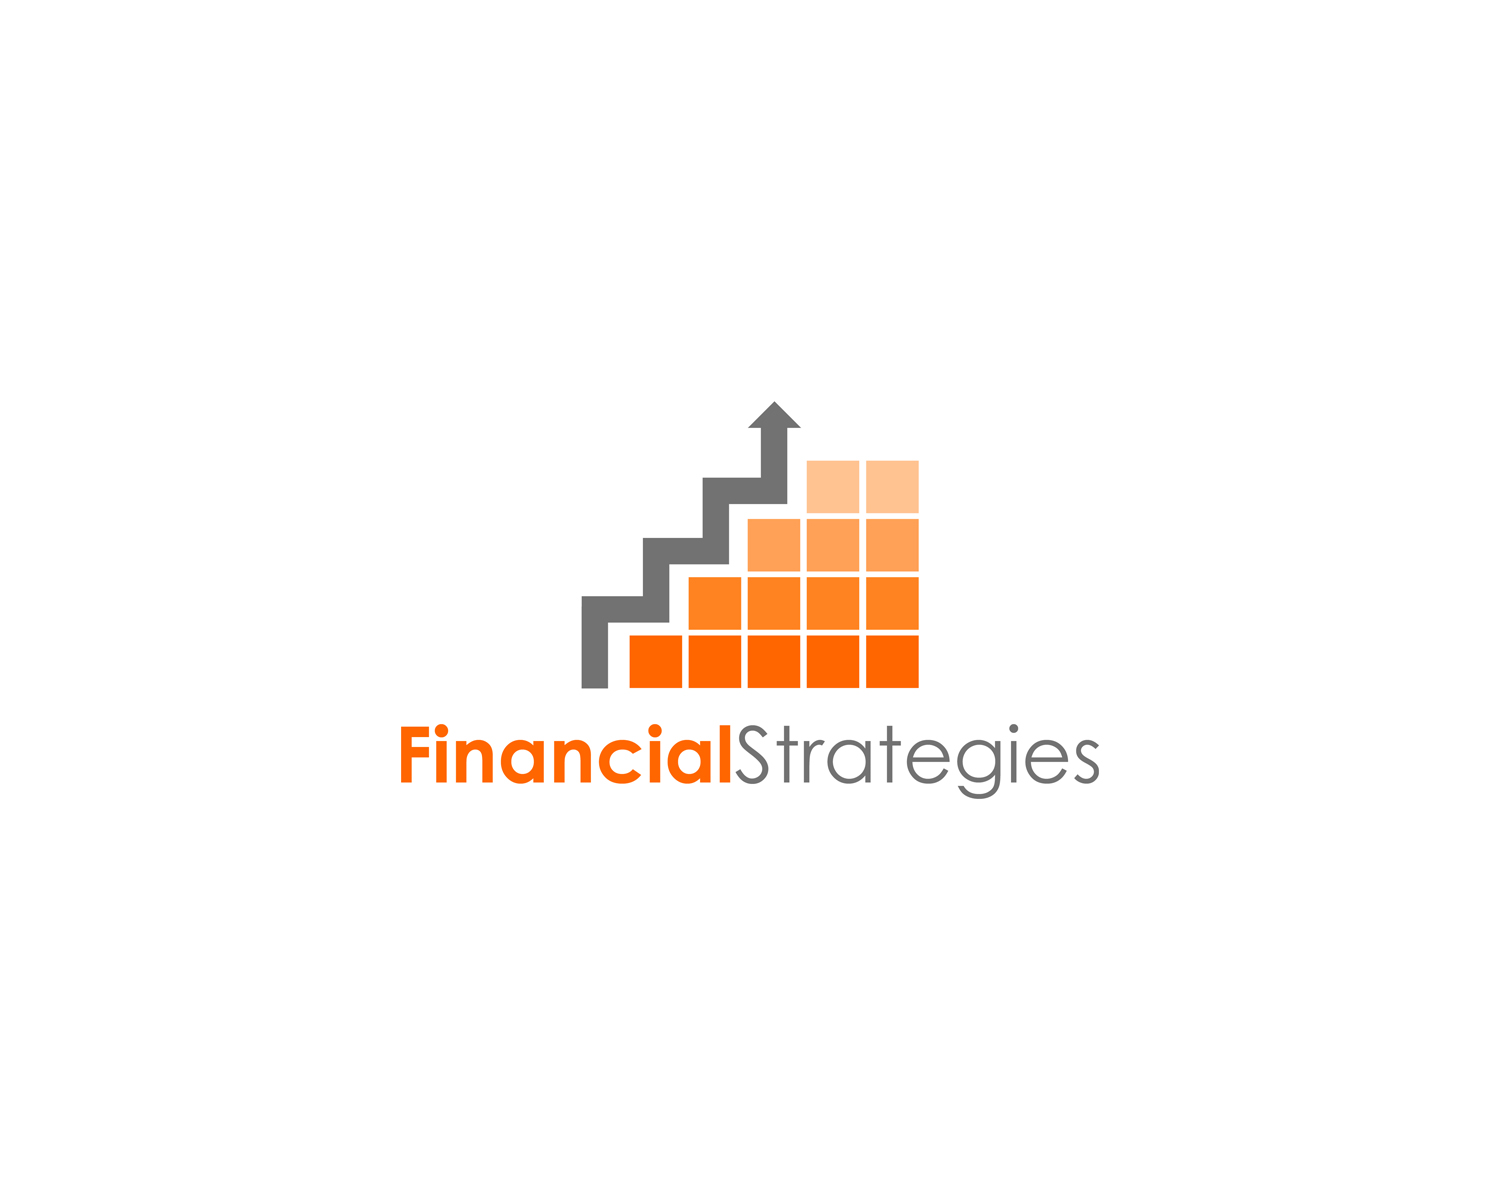 Logo Design by Qoaldjsk - Entry No. 137 in the Logo Design Contest Logo Design Needed for Exciting New Company FS Financial Strategies.